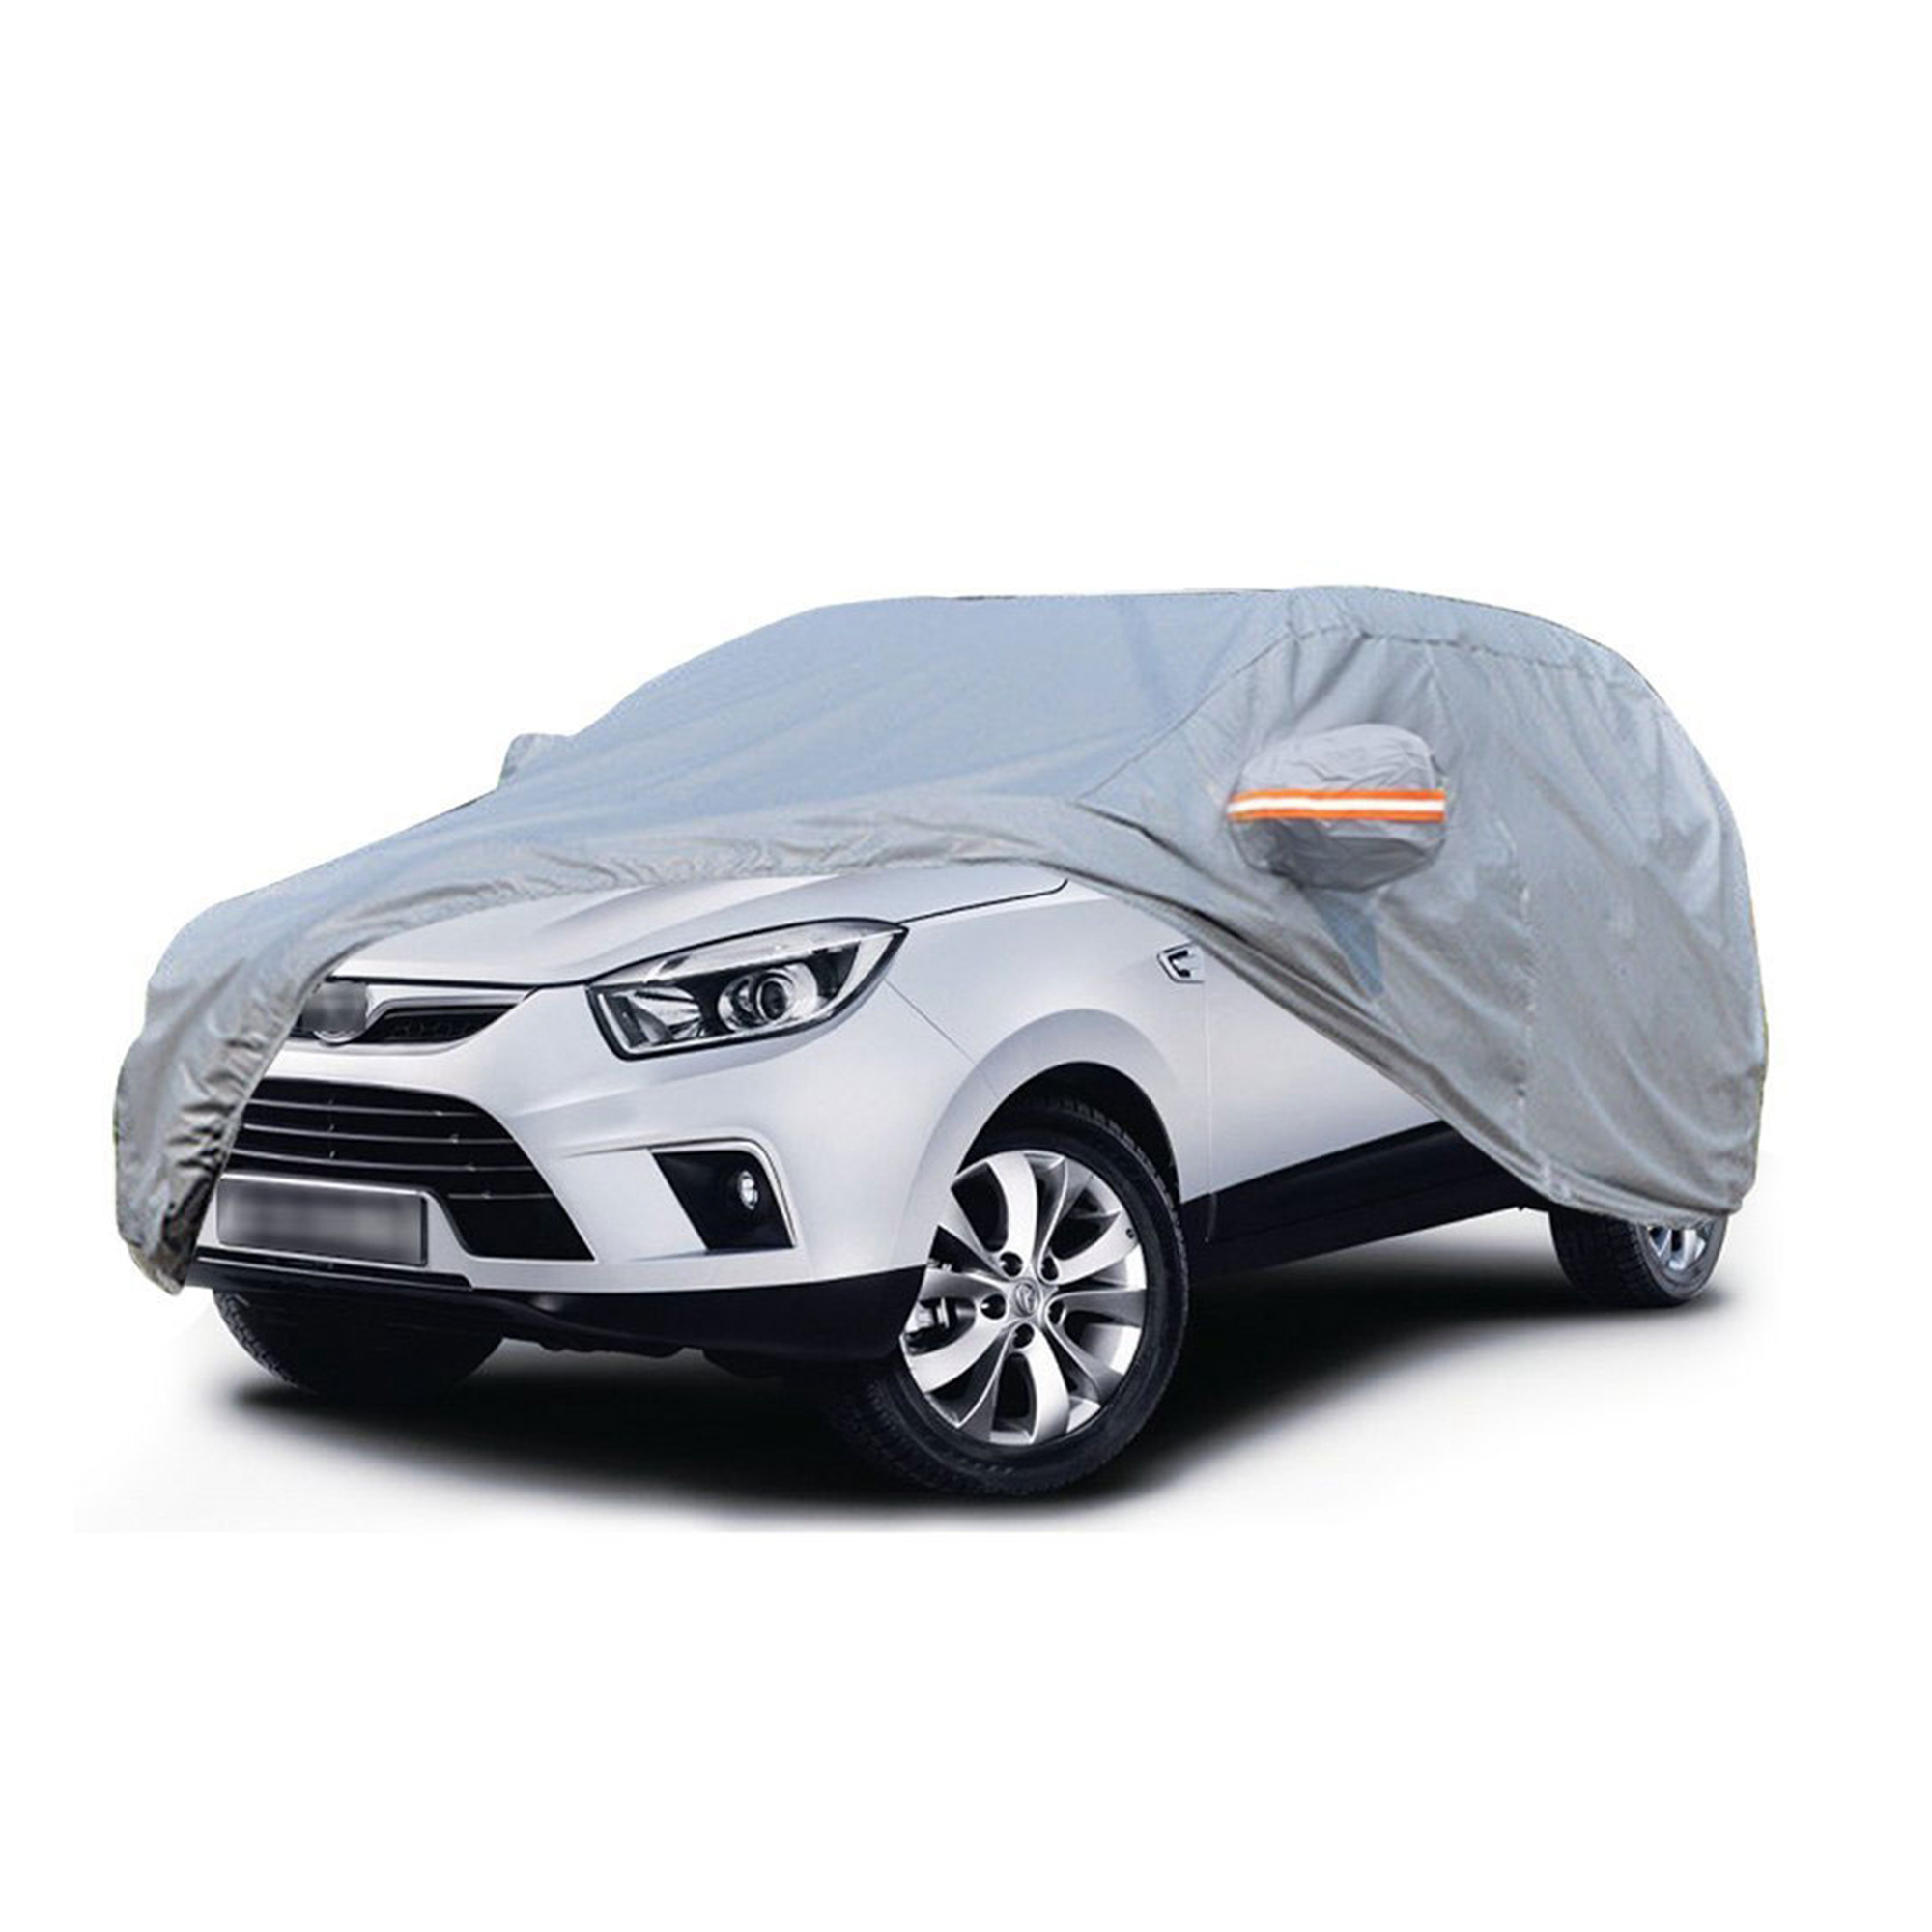 "Waterproof Breathable Outdoor Indoor SUV Car Cover Storm-Proof,UV,Snow Proof Water Resistant(Fits up to 177"",Gray)"